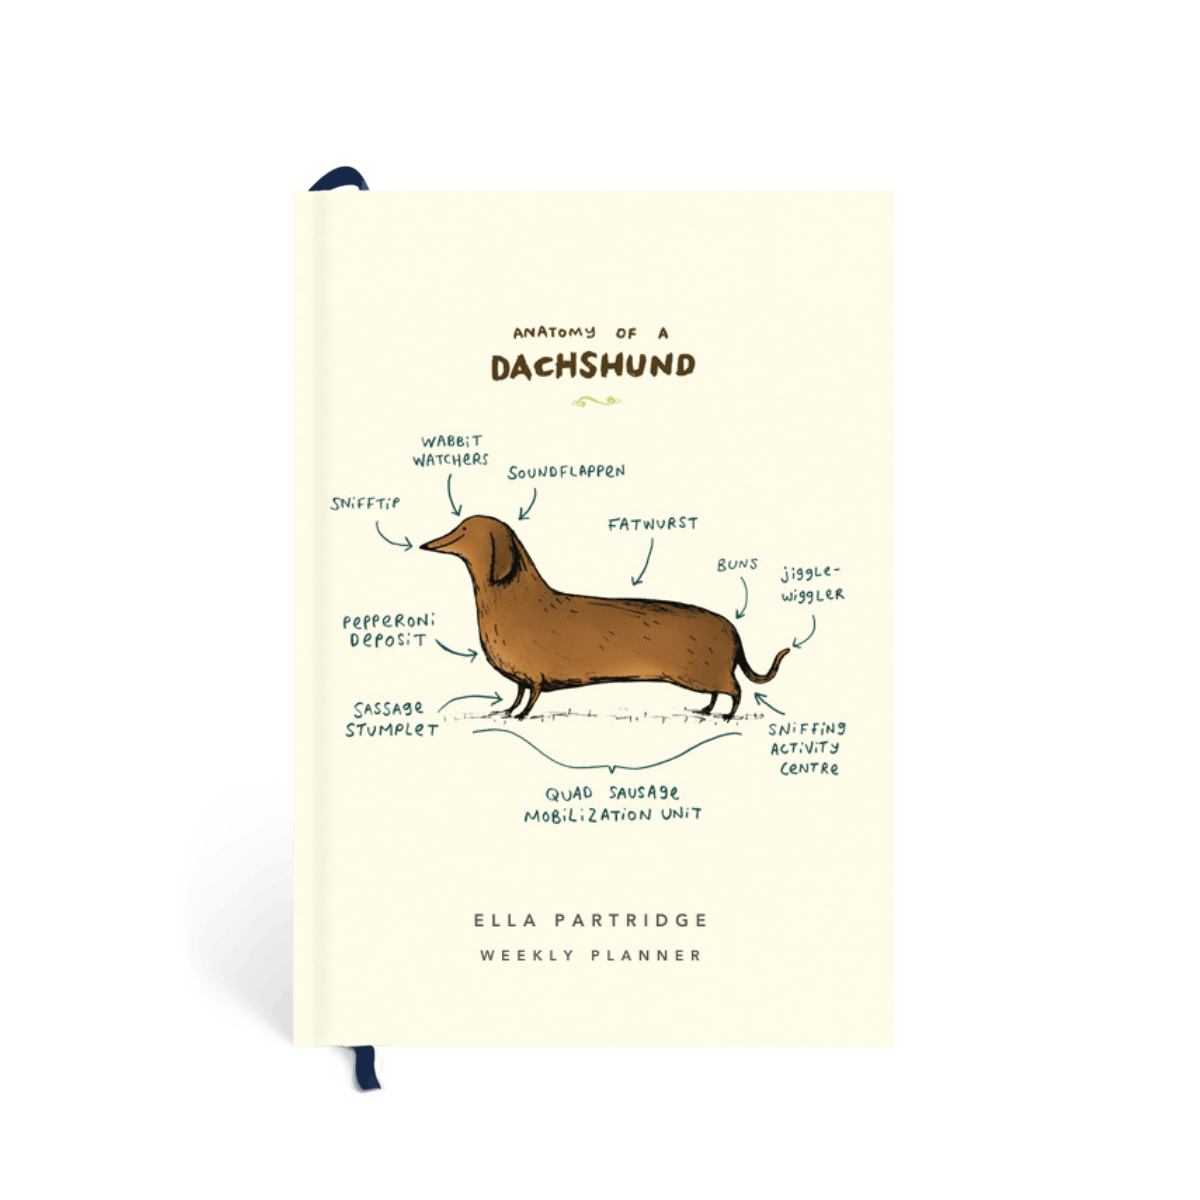 Https%3a%2f%2fwww.papier.com%2fproduct image%2f63569%2f36%2fanatomy of a dachshund 14953 front 1548792660.png?ixlib=rb 1.1